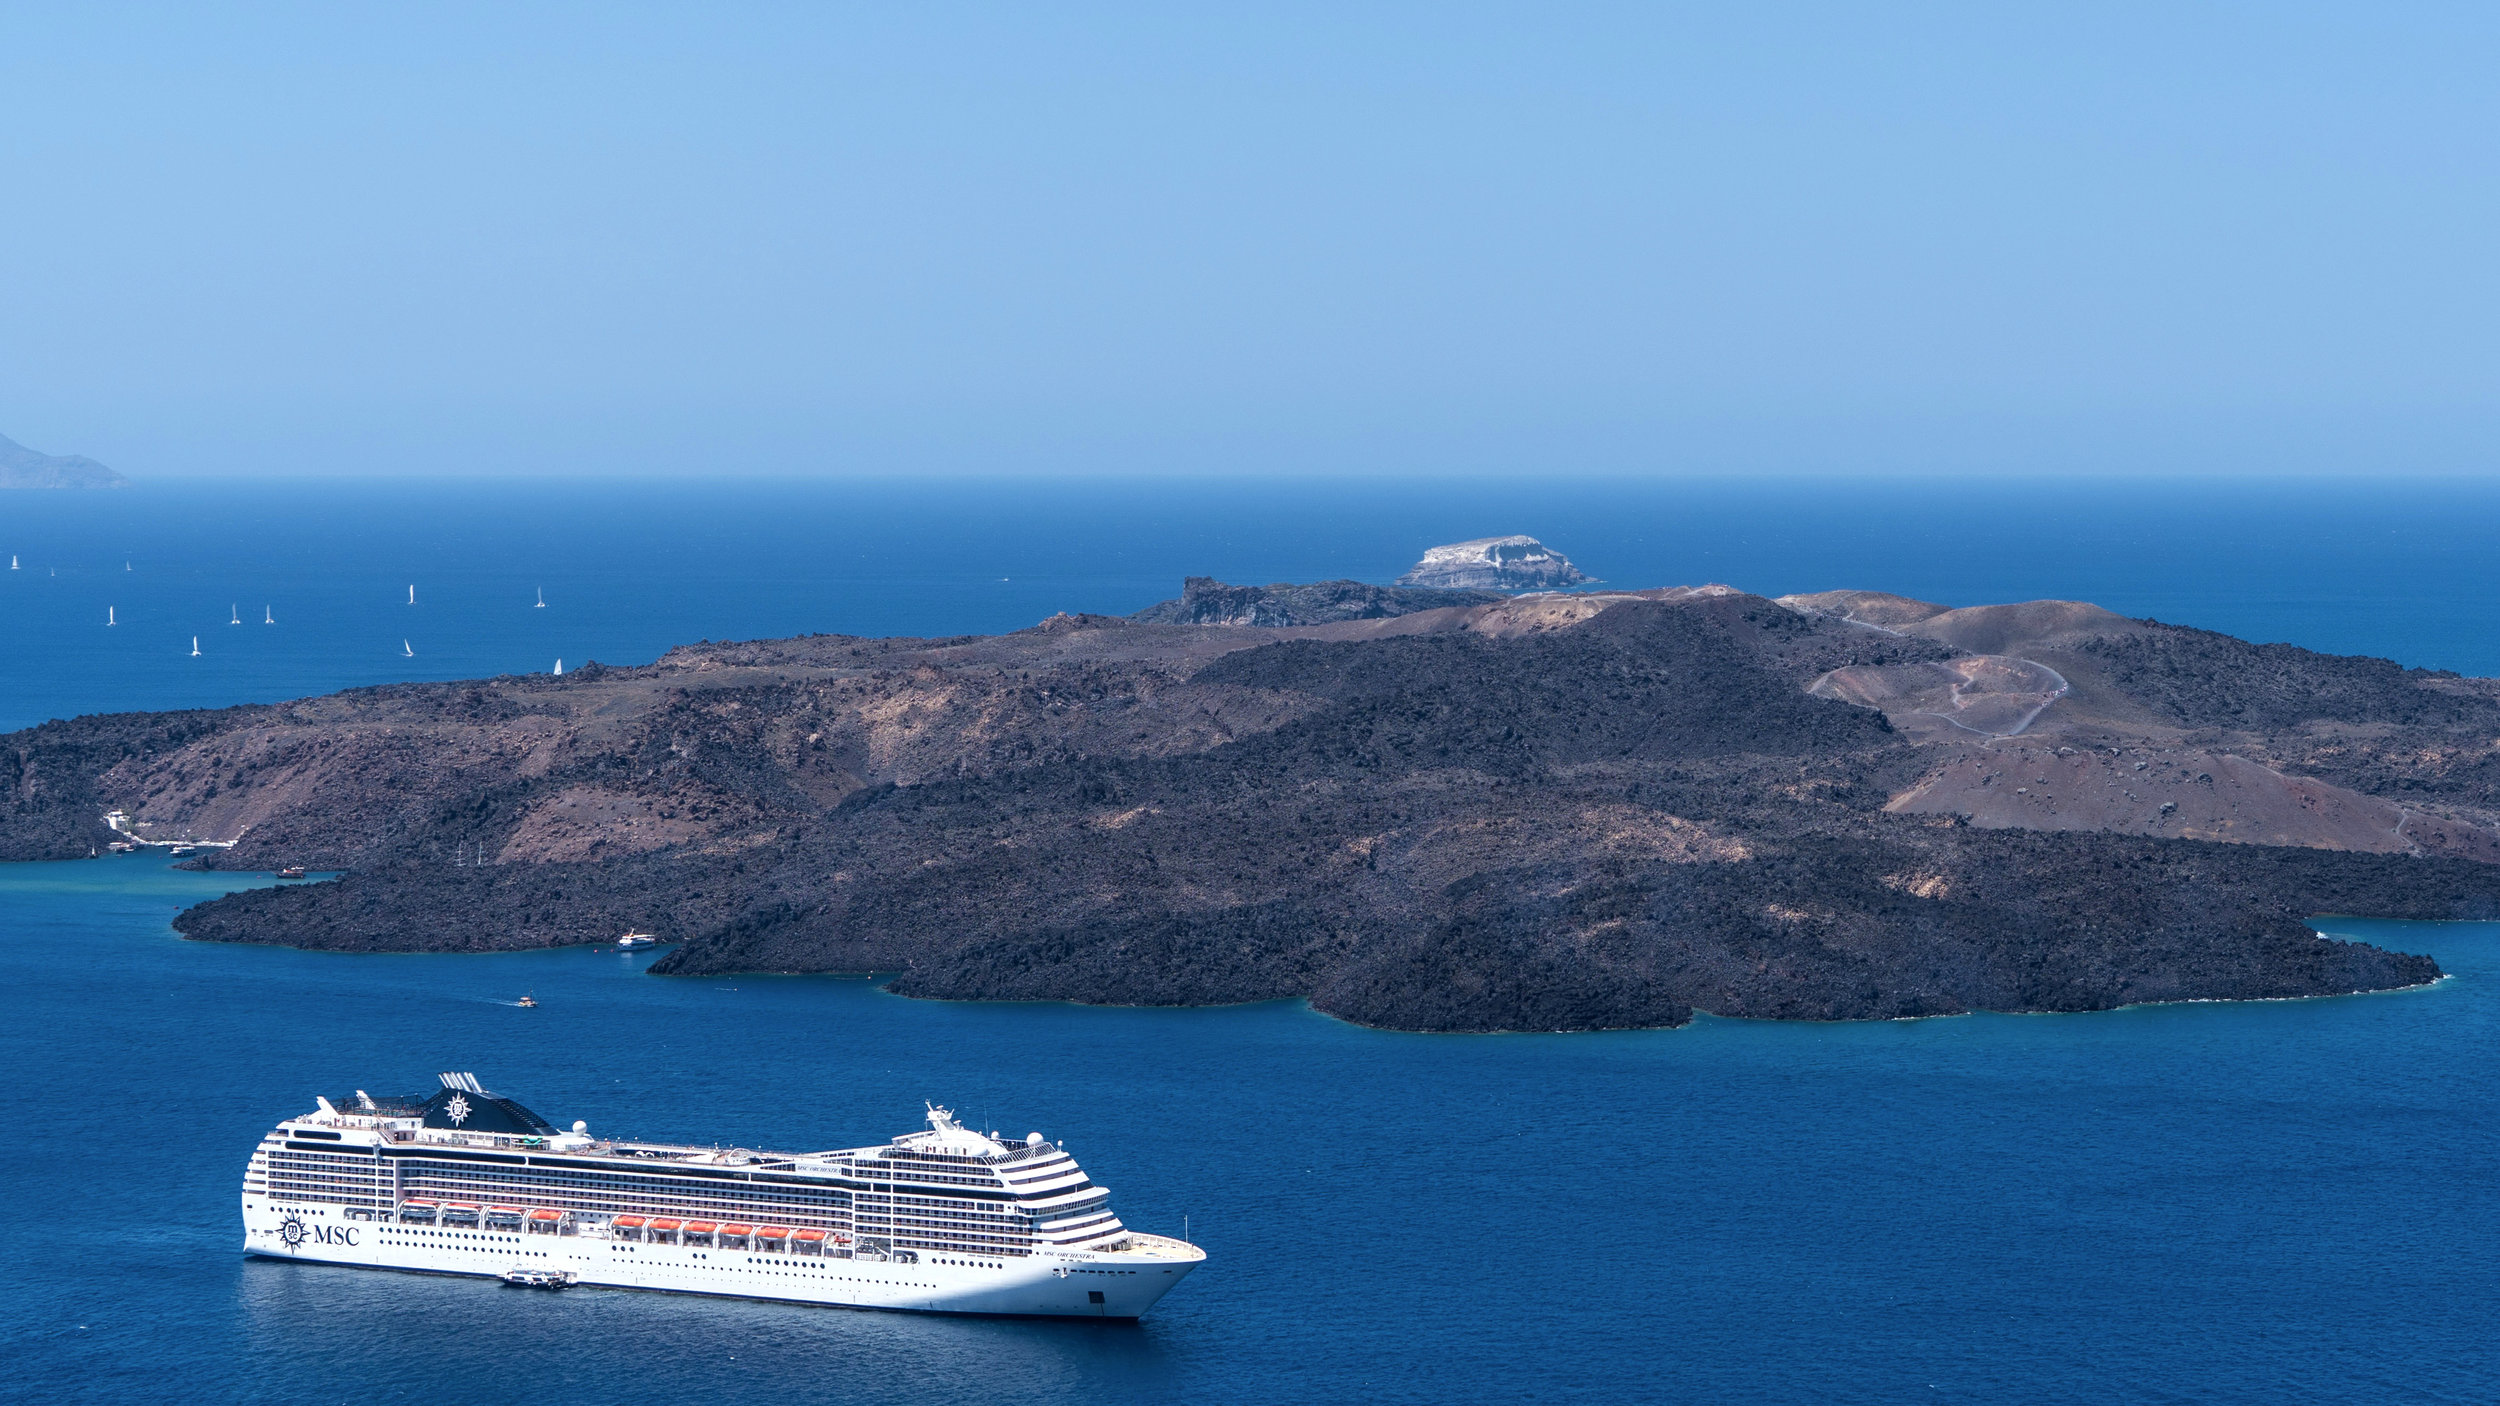 CRUISING   From port to sea, discover the many wonders of the world by boat.